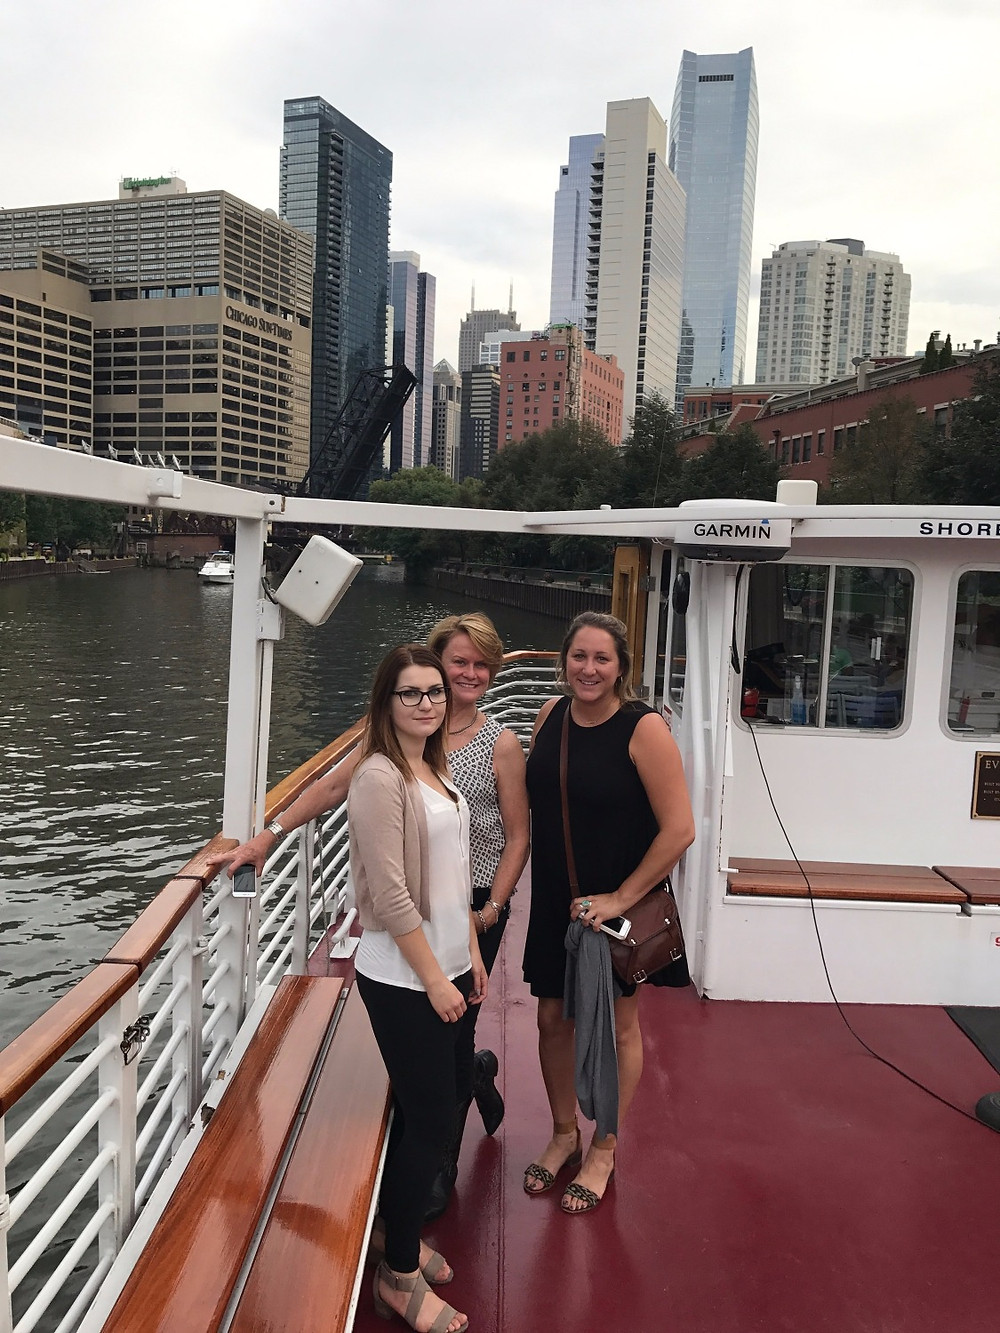 KBDC Owner Lorey Cavanaugh with Design Associate, Kate and Design Assistant, Paulina on an architectural boat tour along the Chicago River.